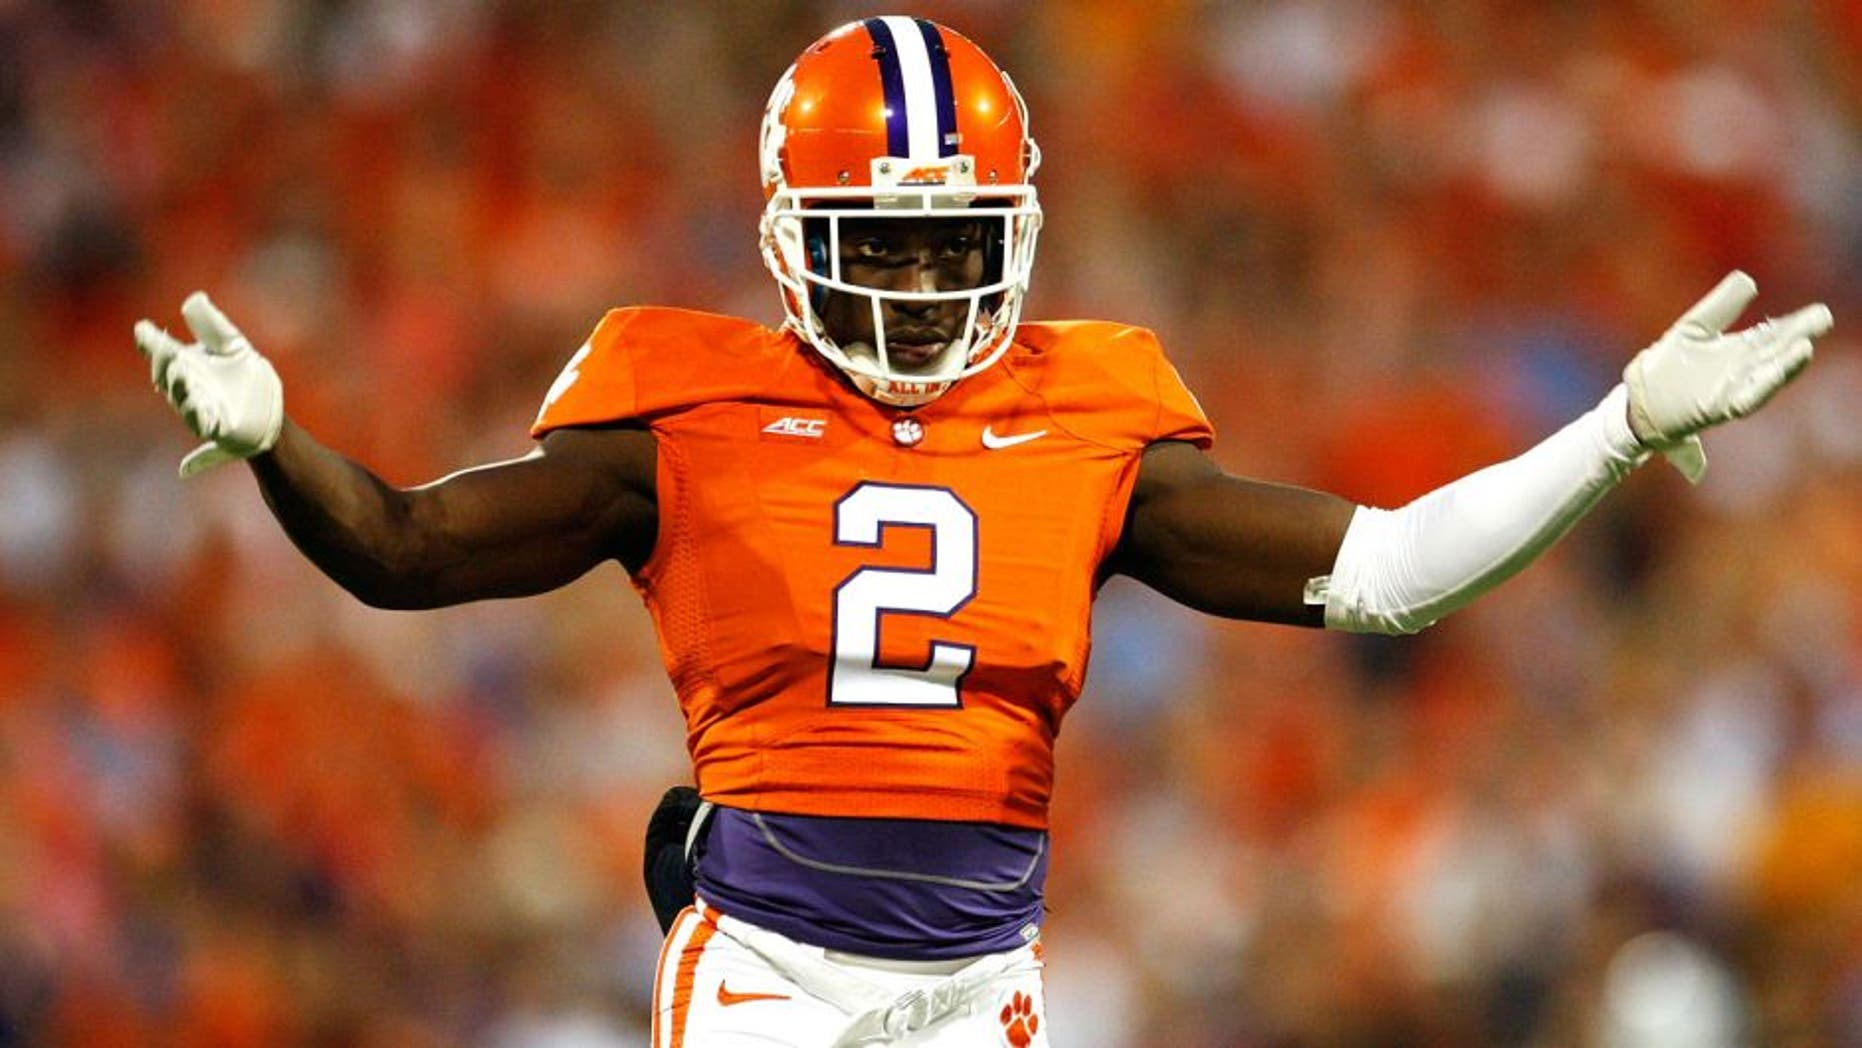 CLEMSON, SC - SEPTEMBER 27: Mackensie Alexander #2 of the Clemson Tigers pumps up the crowd during the game against the North Carolina Tar Heels at Memorial Stadium on September 27, 2014 in Clemson, South Carolina. (Photo by Tyler Smith/Getty Images)